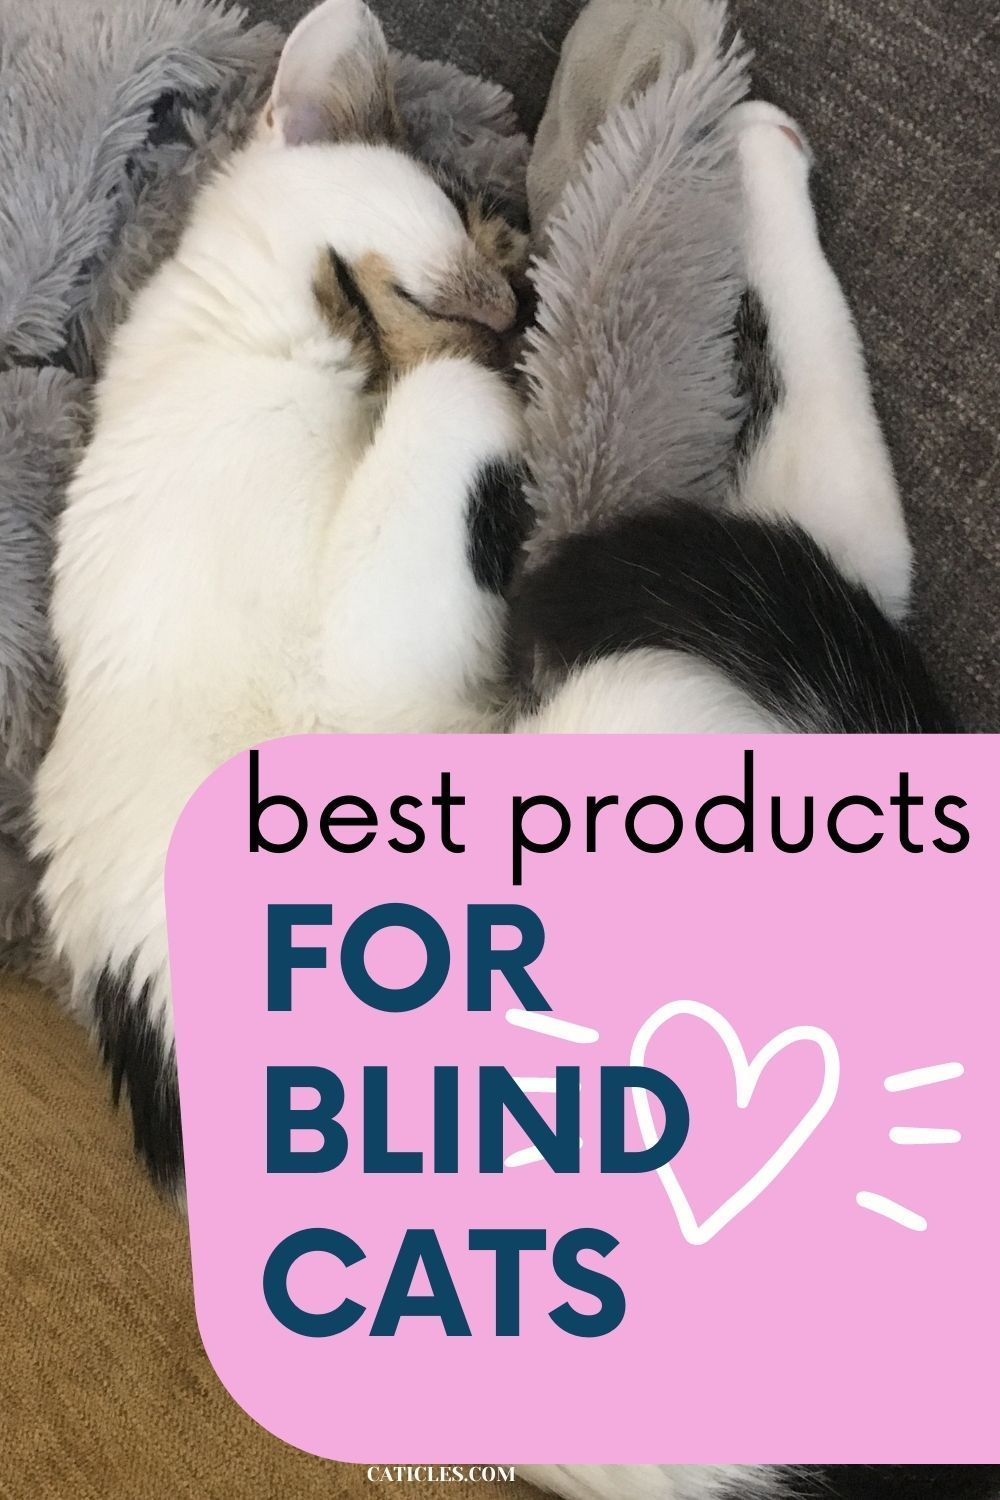 Best Products For Blind Cats And Care Tips From A Cat Pro Caticles Cat Care Cat Problems Cat Care Tips